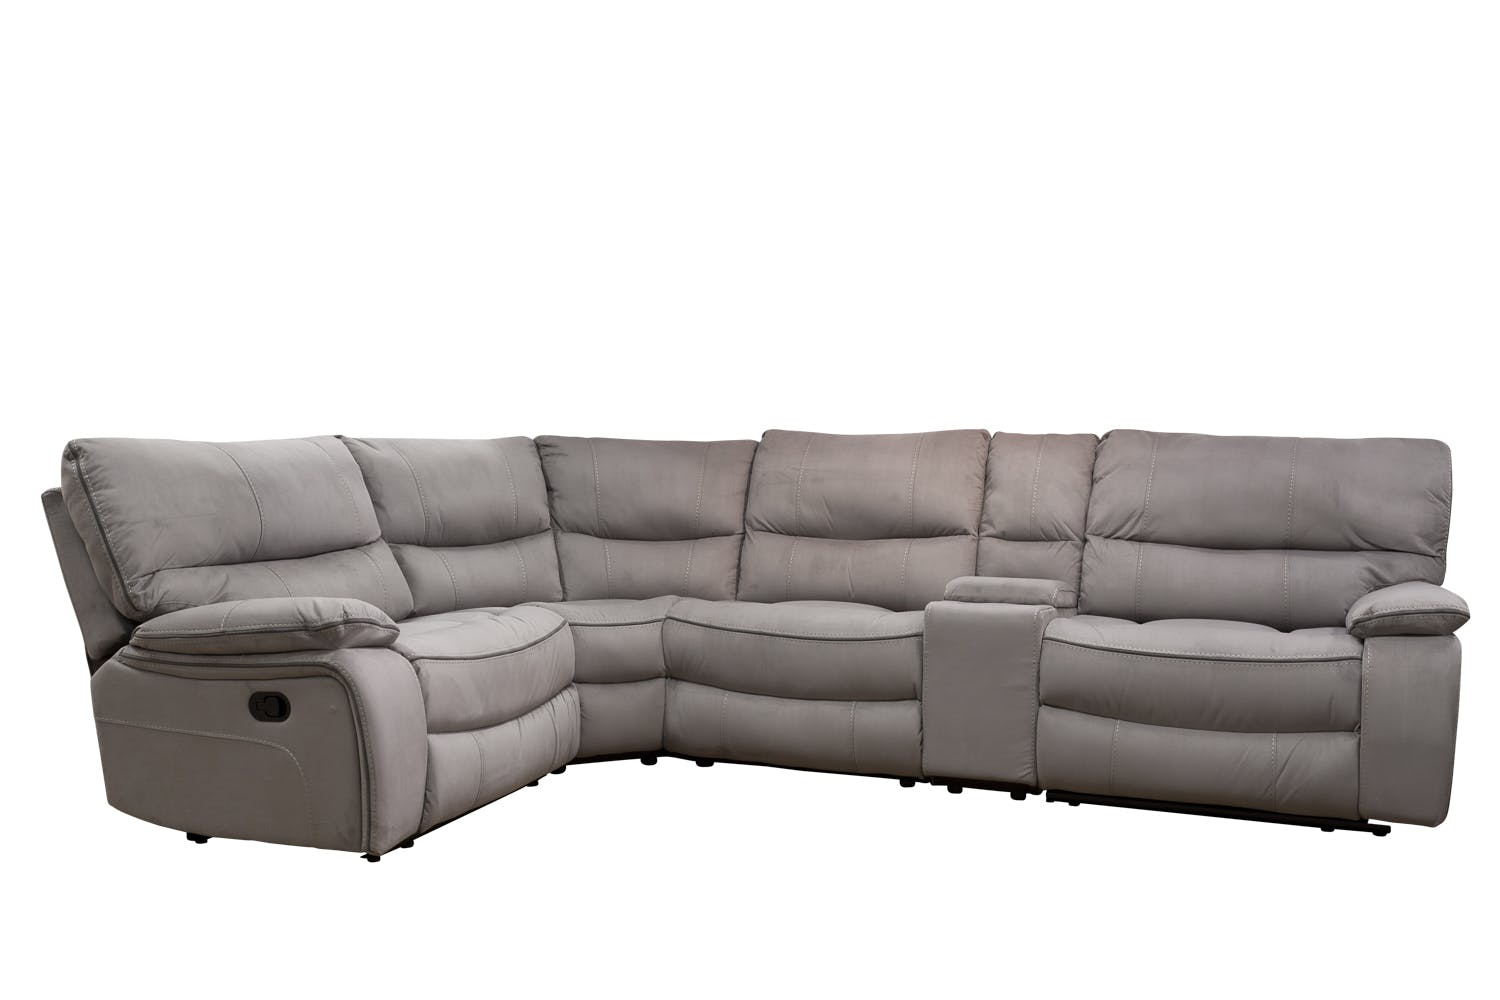 Lattina Corner Recliner Sofa Ireland